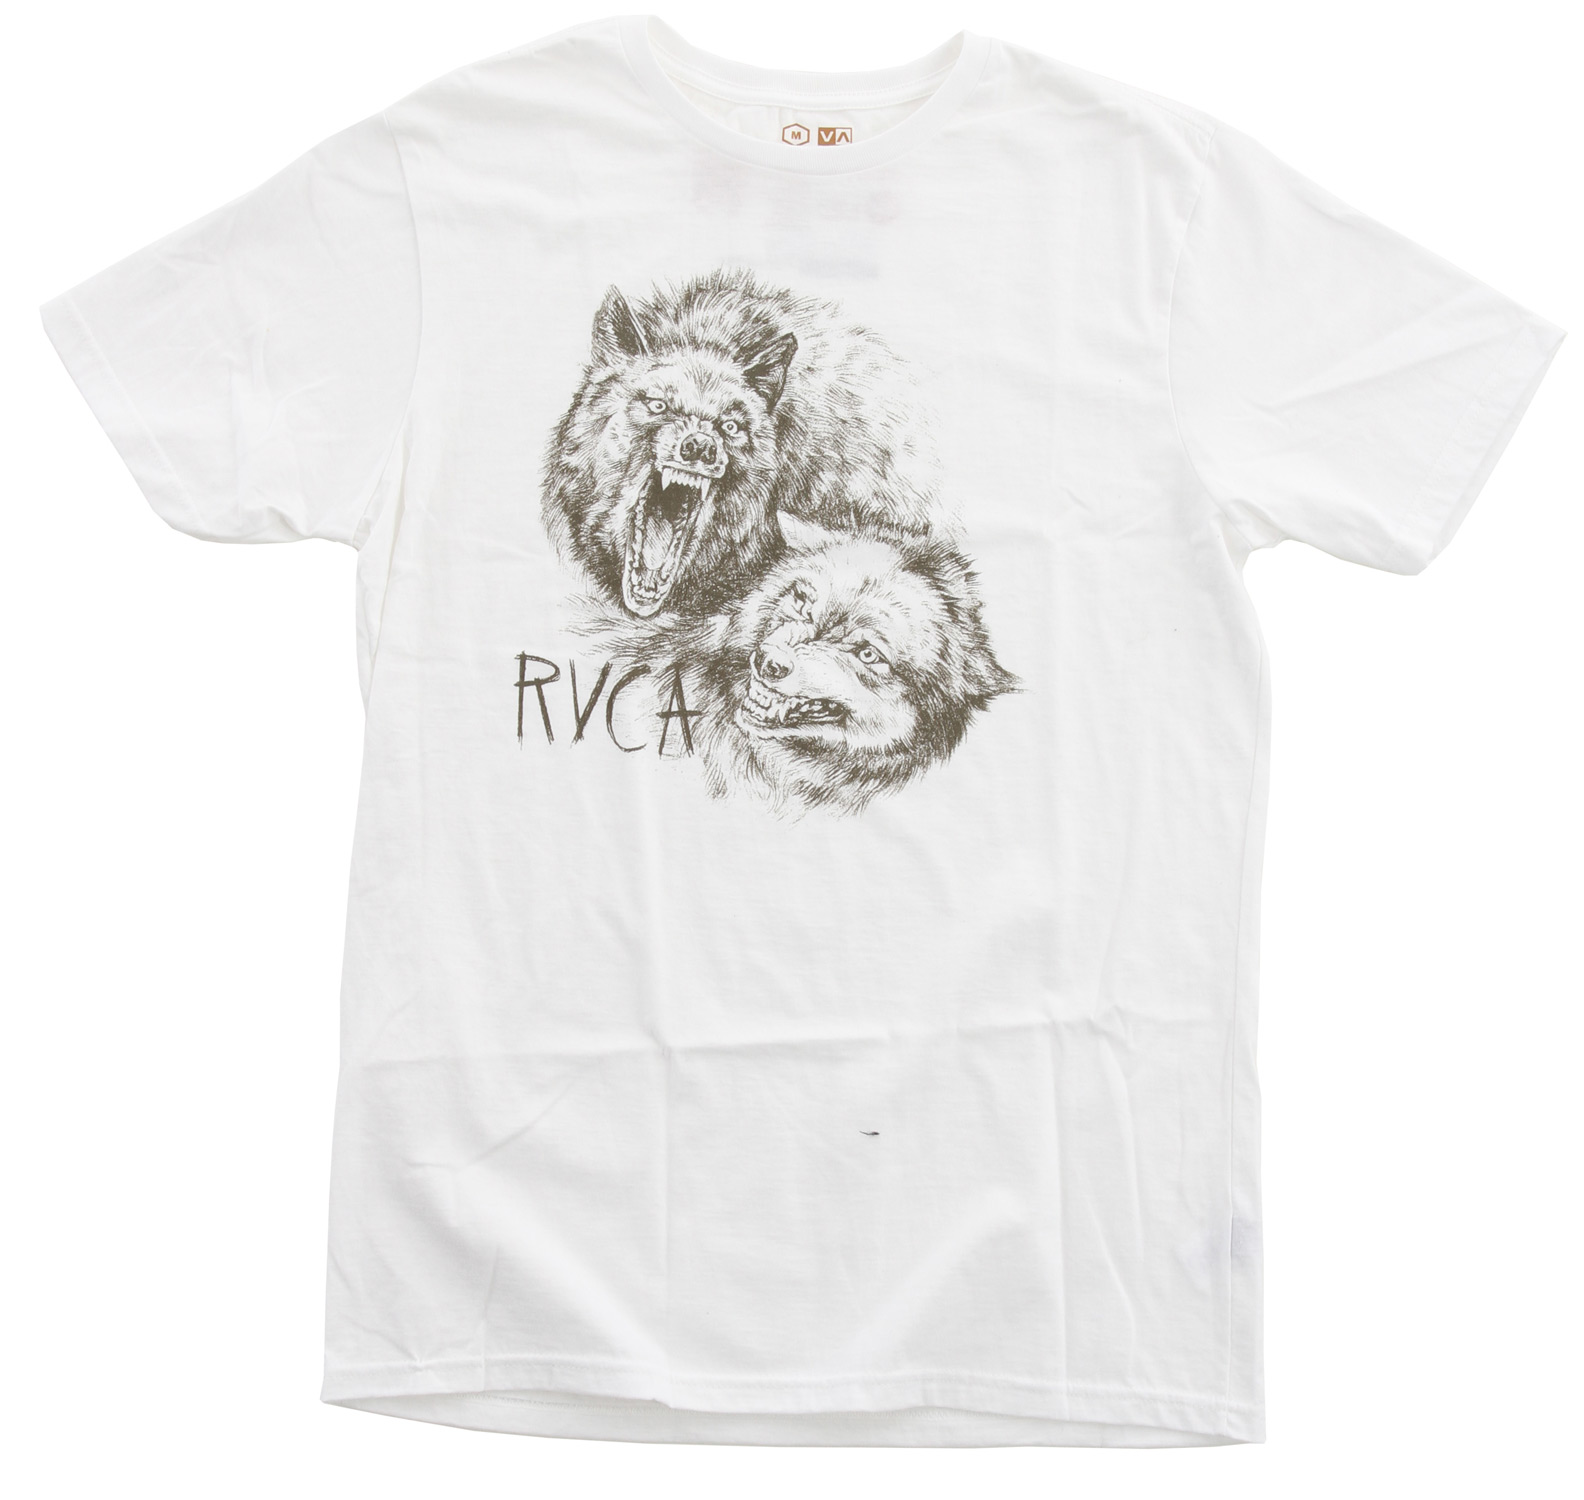 Key Features of the RVCA Wolves Standard T-Shirt: BLK, PAV, RYL, WHT: 100% Combed Cotton Standard Fit Tee with front/back print and screened inside neck - $16.95